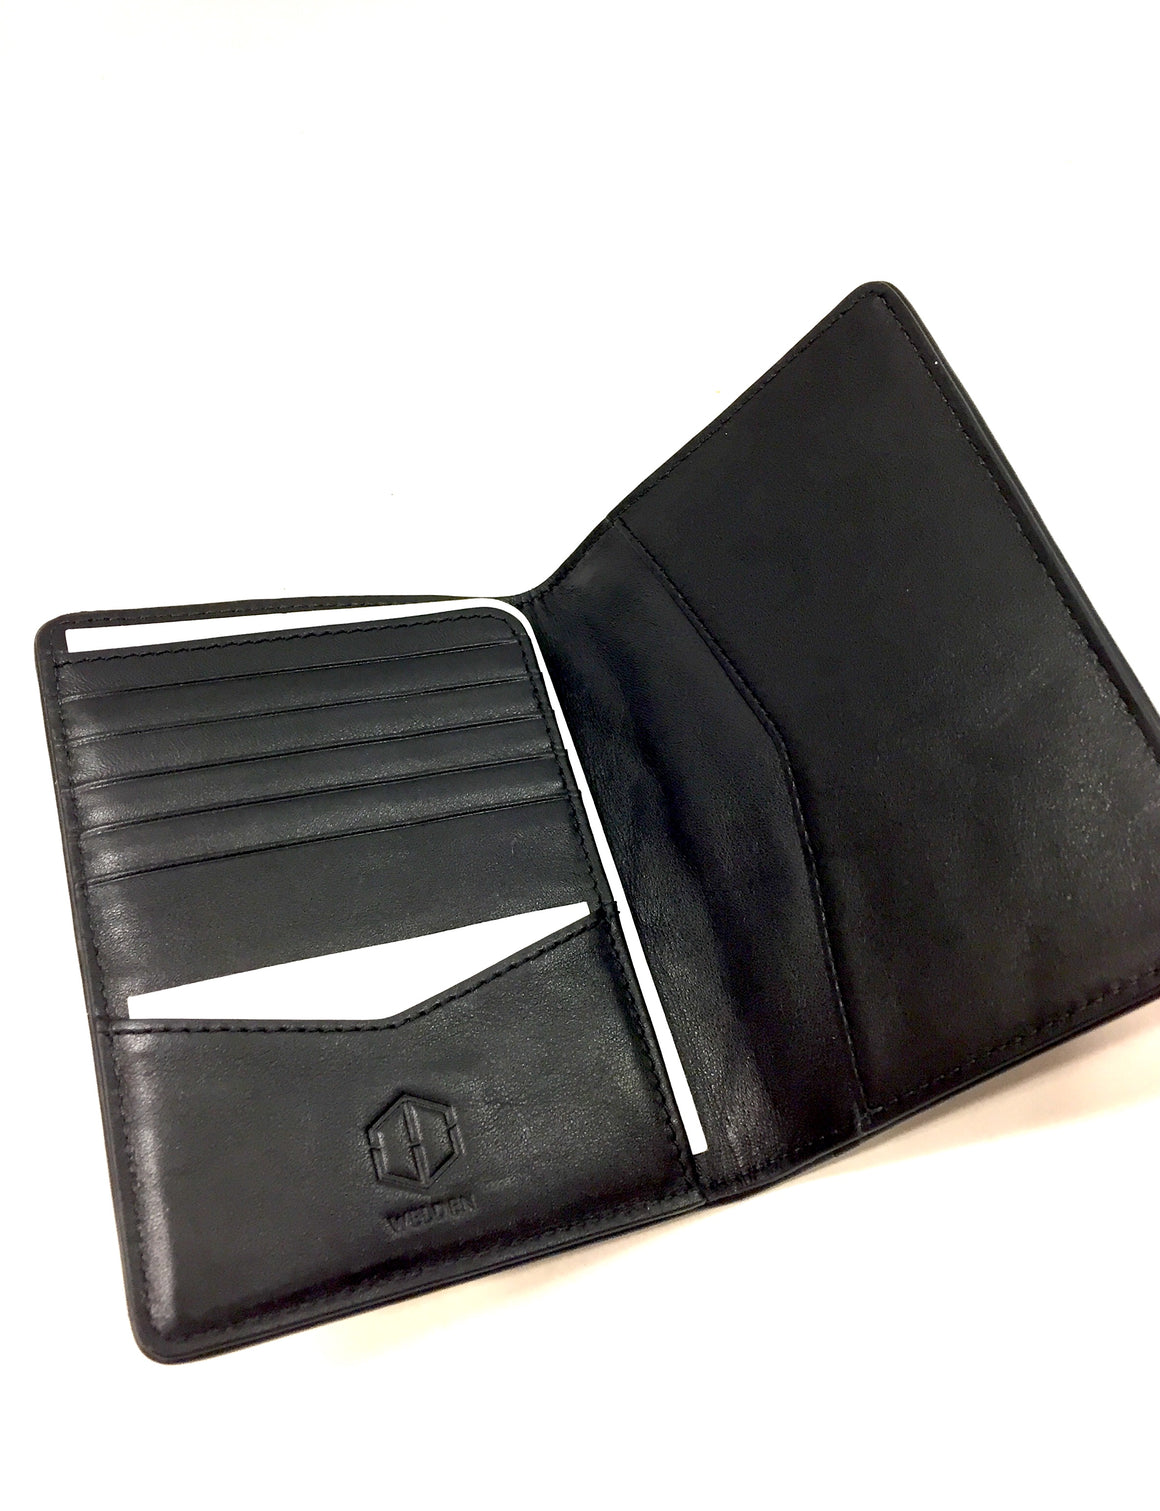 New WELDEN Black Hexagon-Weave Bifold C/C Wallet